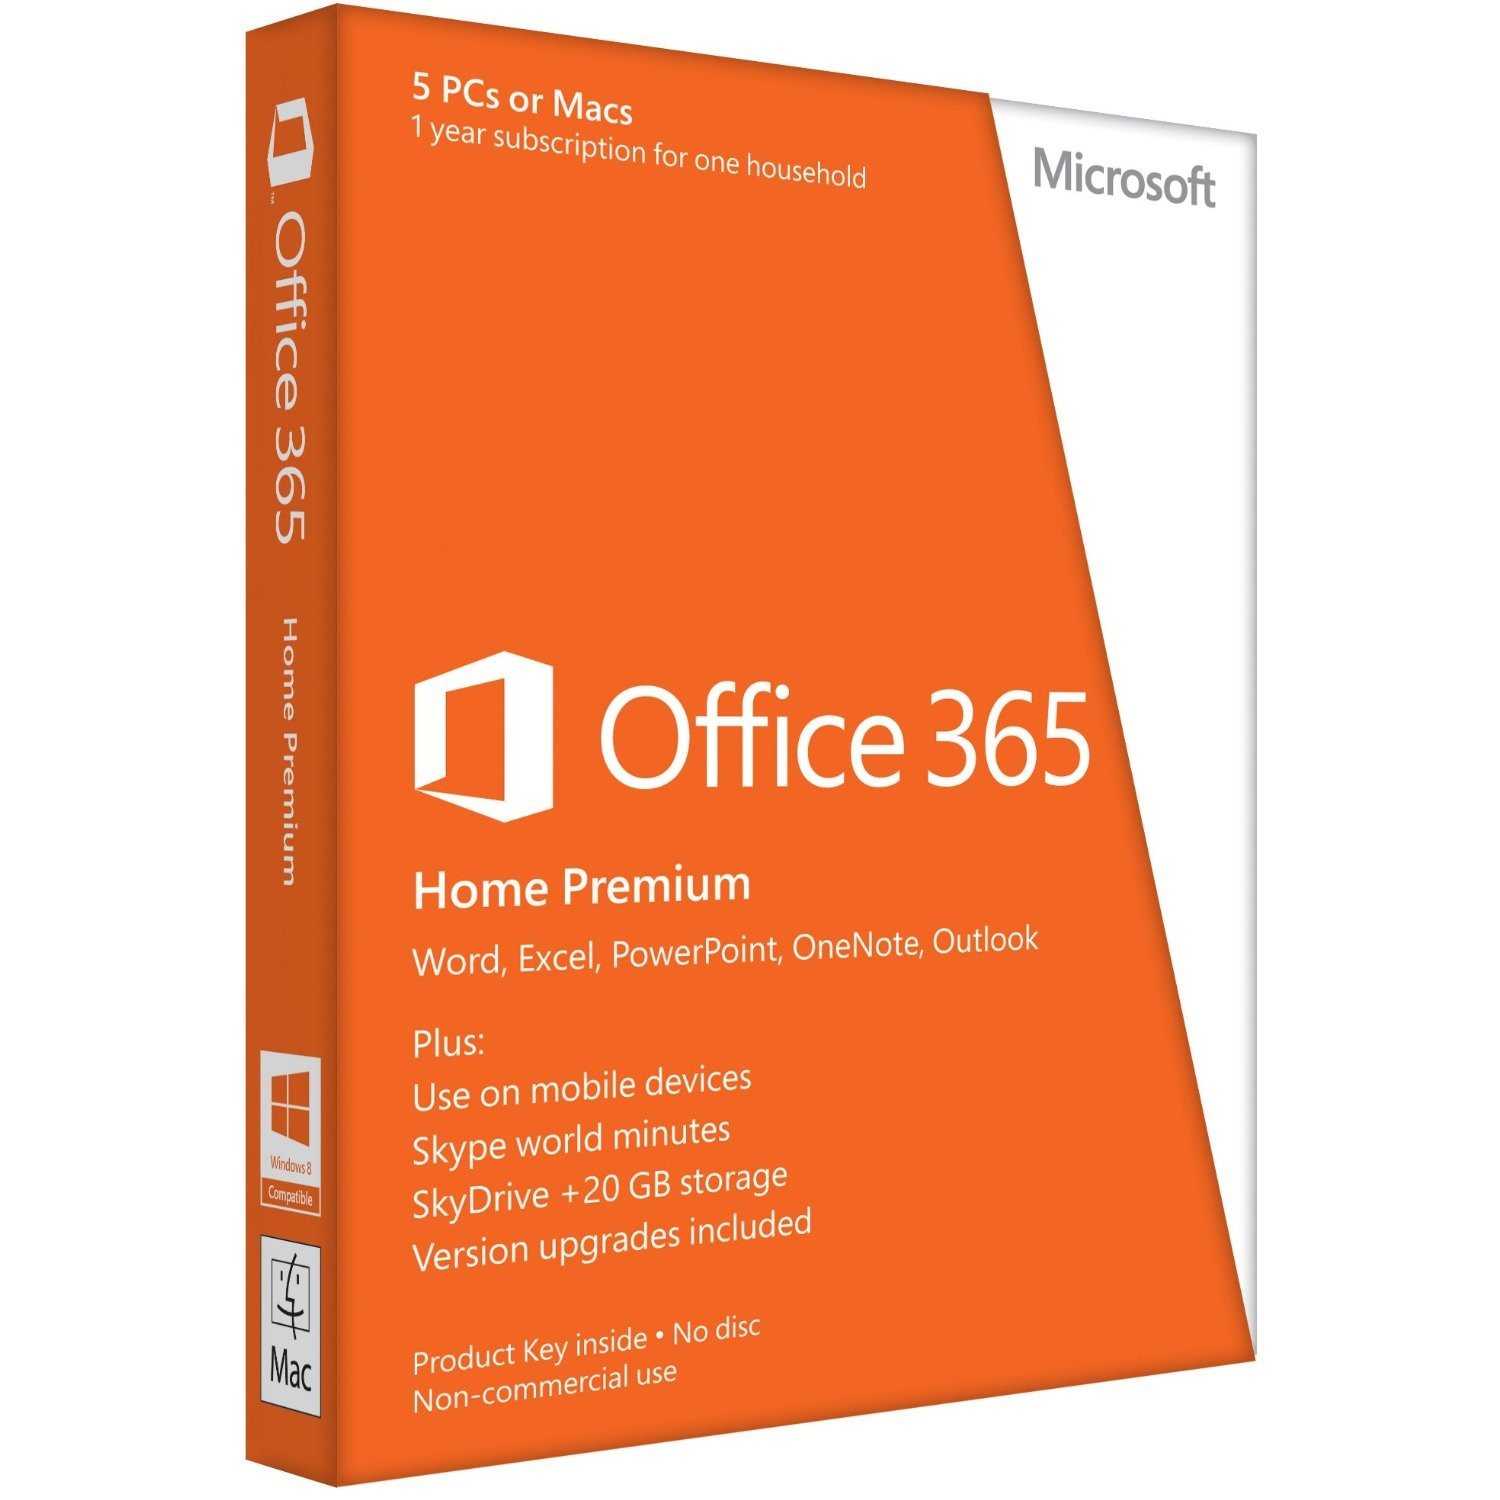 microsoft office 365 home premium licence card 5 users 1 year sub pc mac. Black Bedroom Furniture Sets. Home Design Ideas